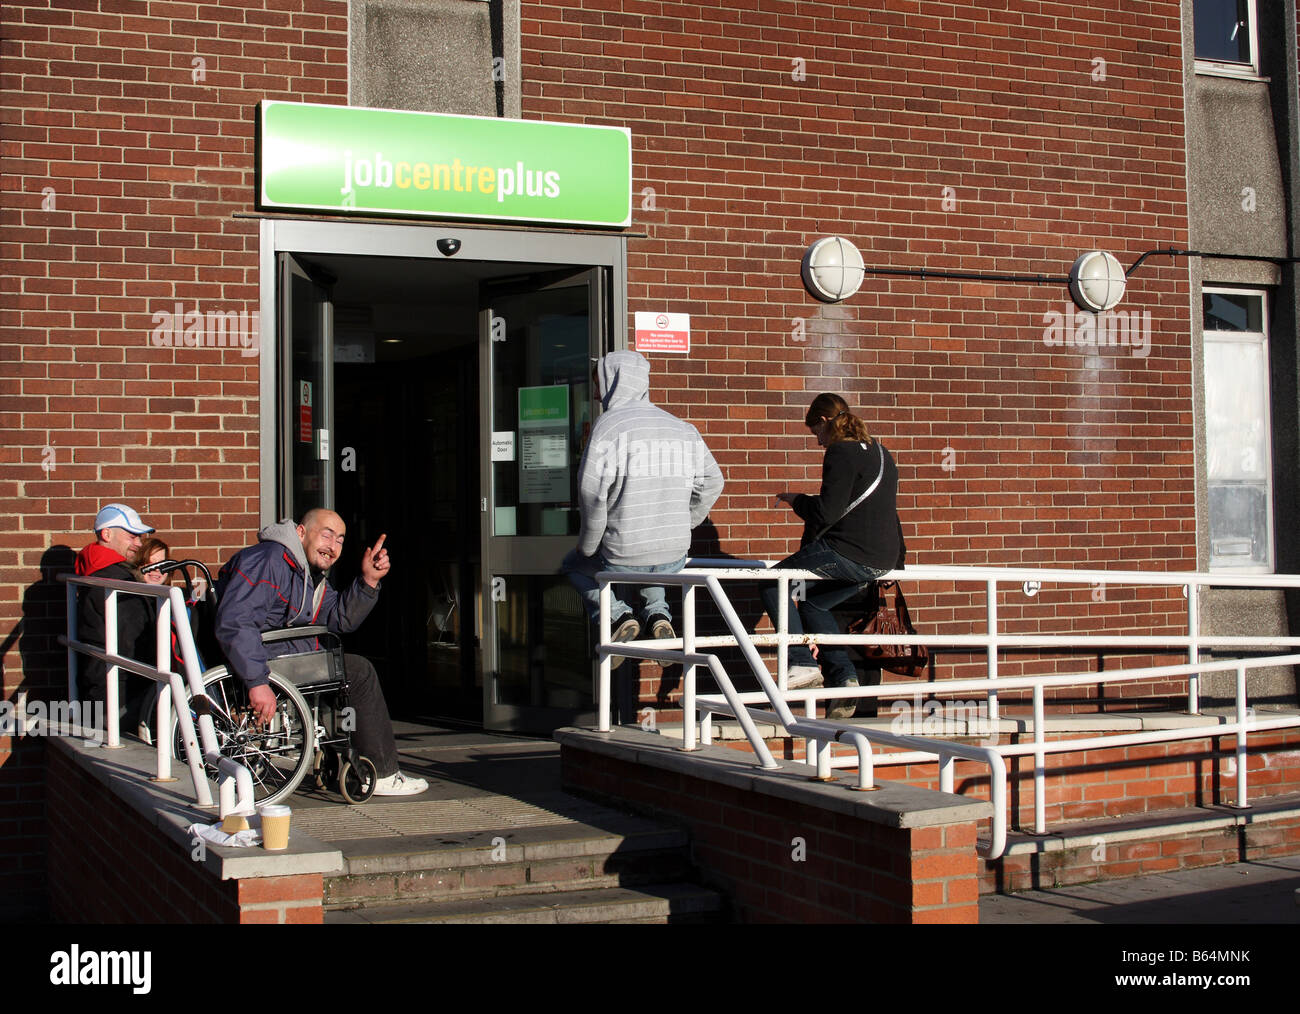 People waiting outside a Job Centre Plus, Station Street, Nottingham, England, U.K. - Stock Image